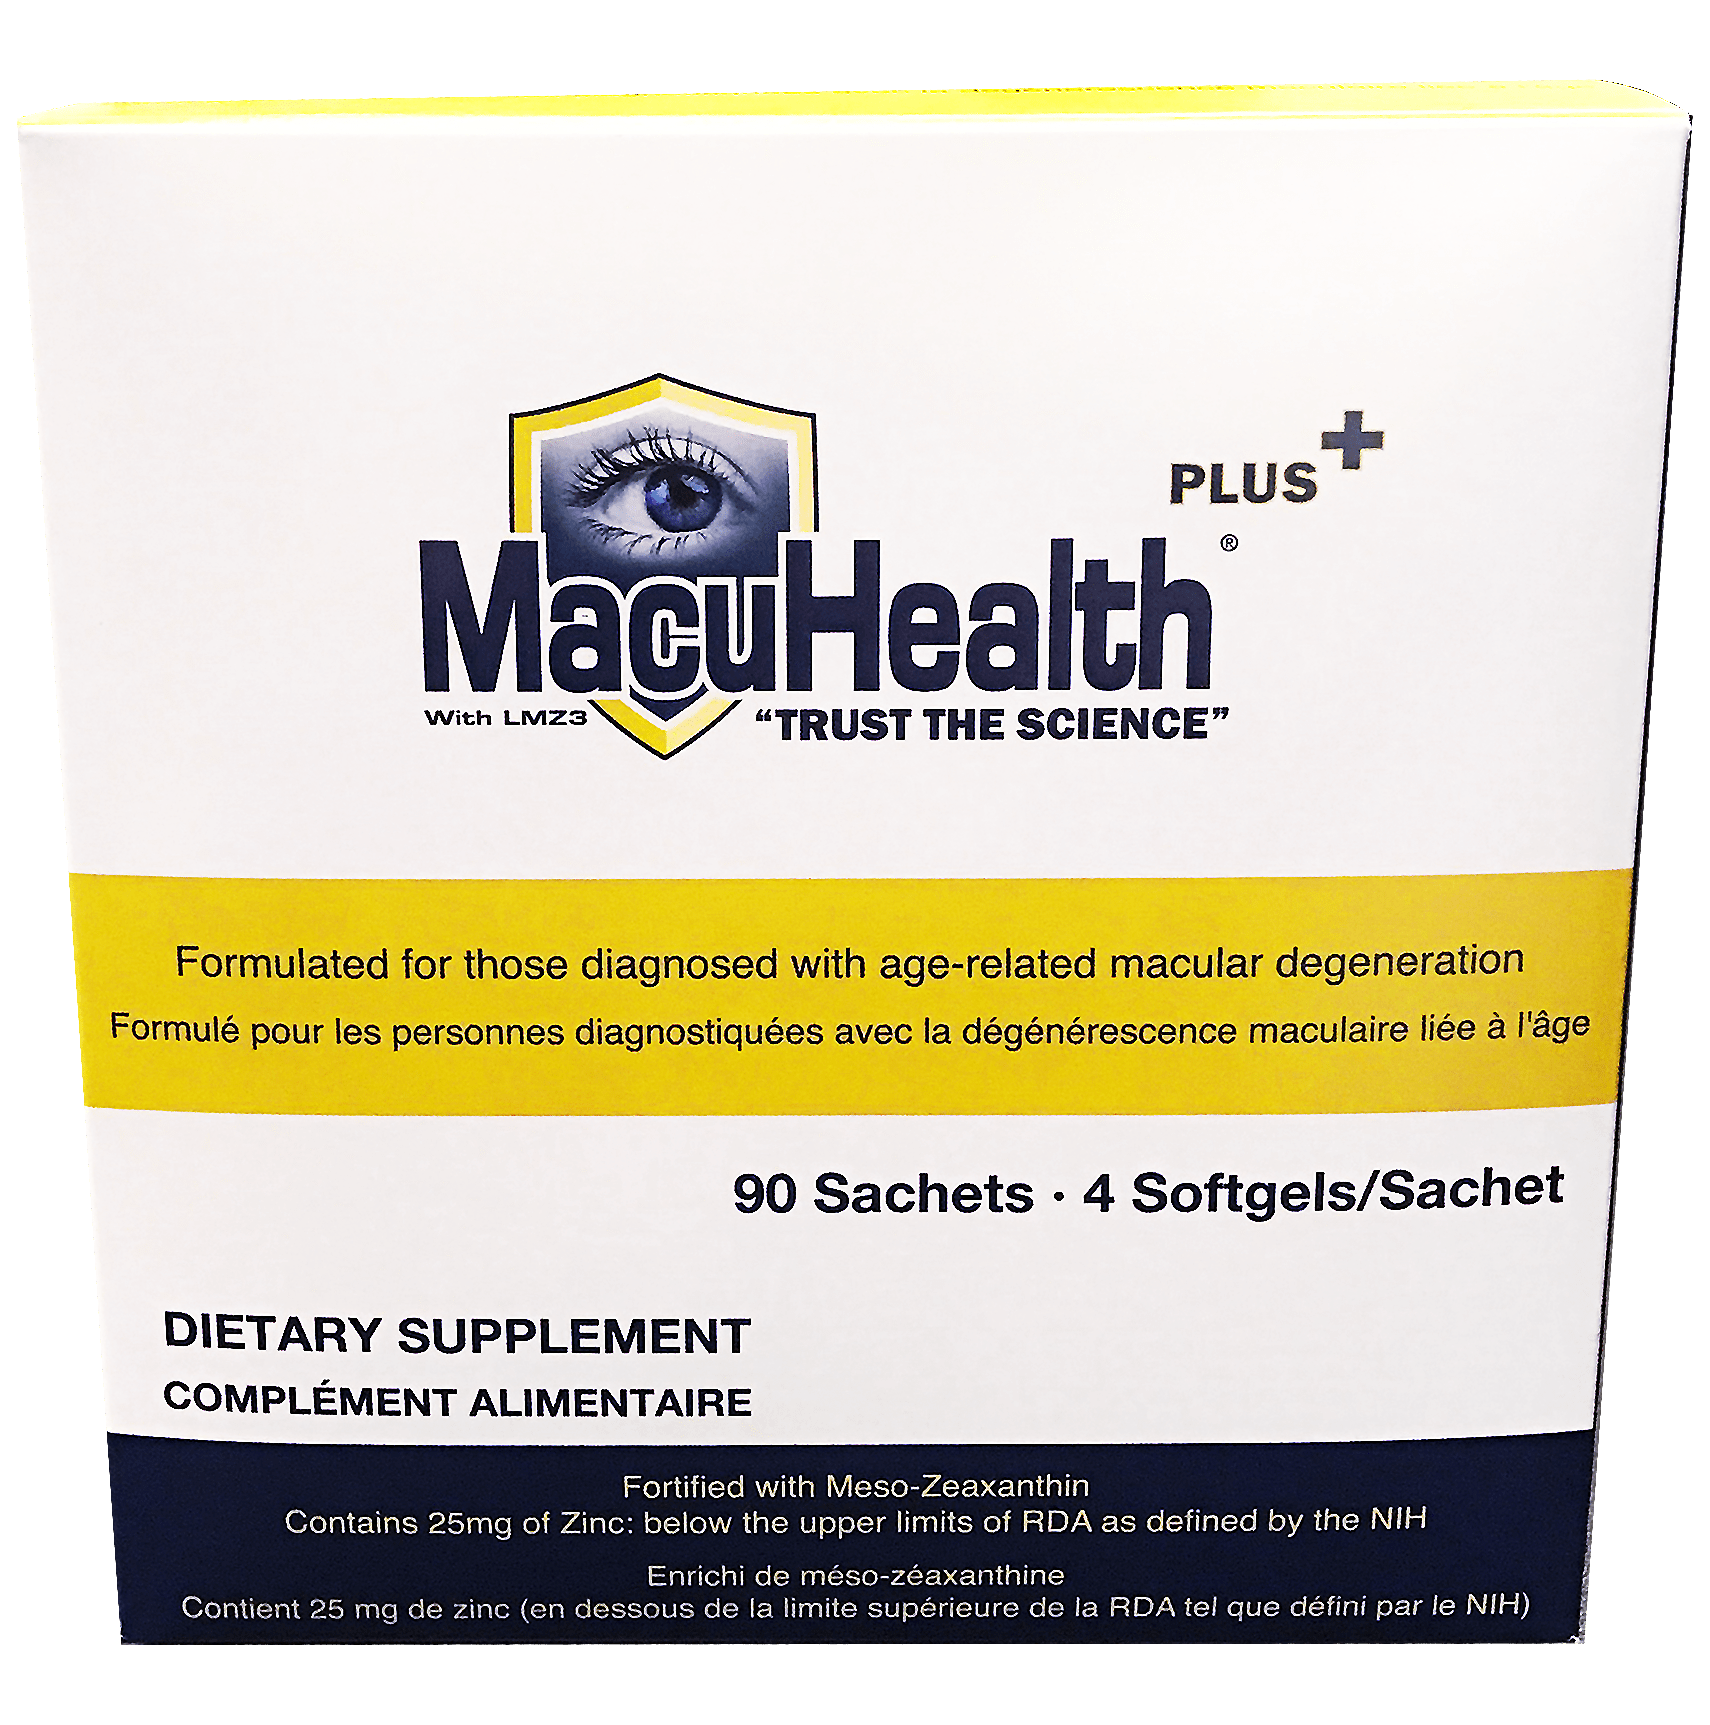 MacuHealth Plus Dietary Supplement Box